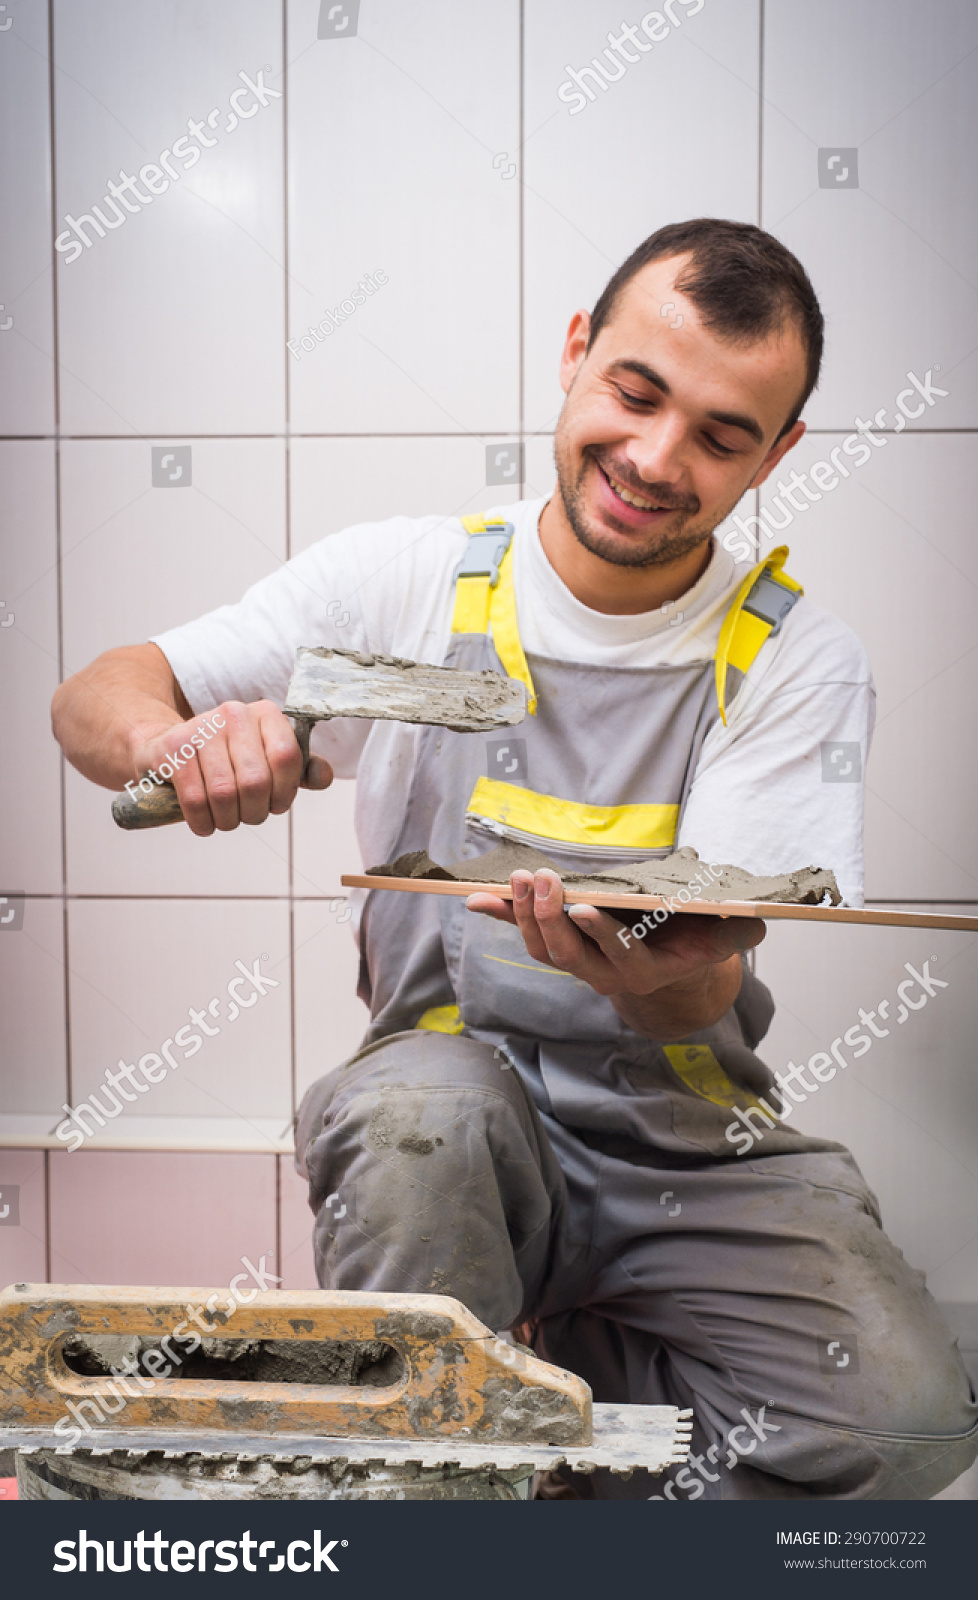 Floor Tile Workers : Industrial tiler builder worker installing floor stock